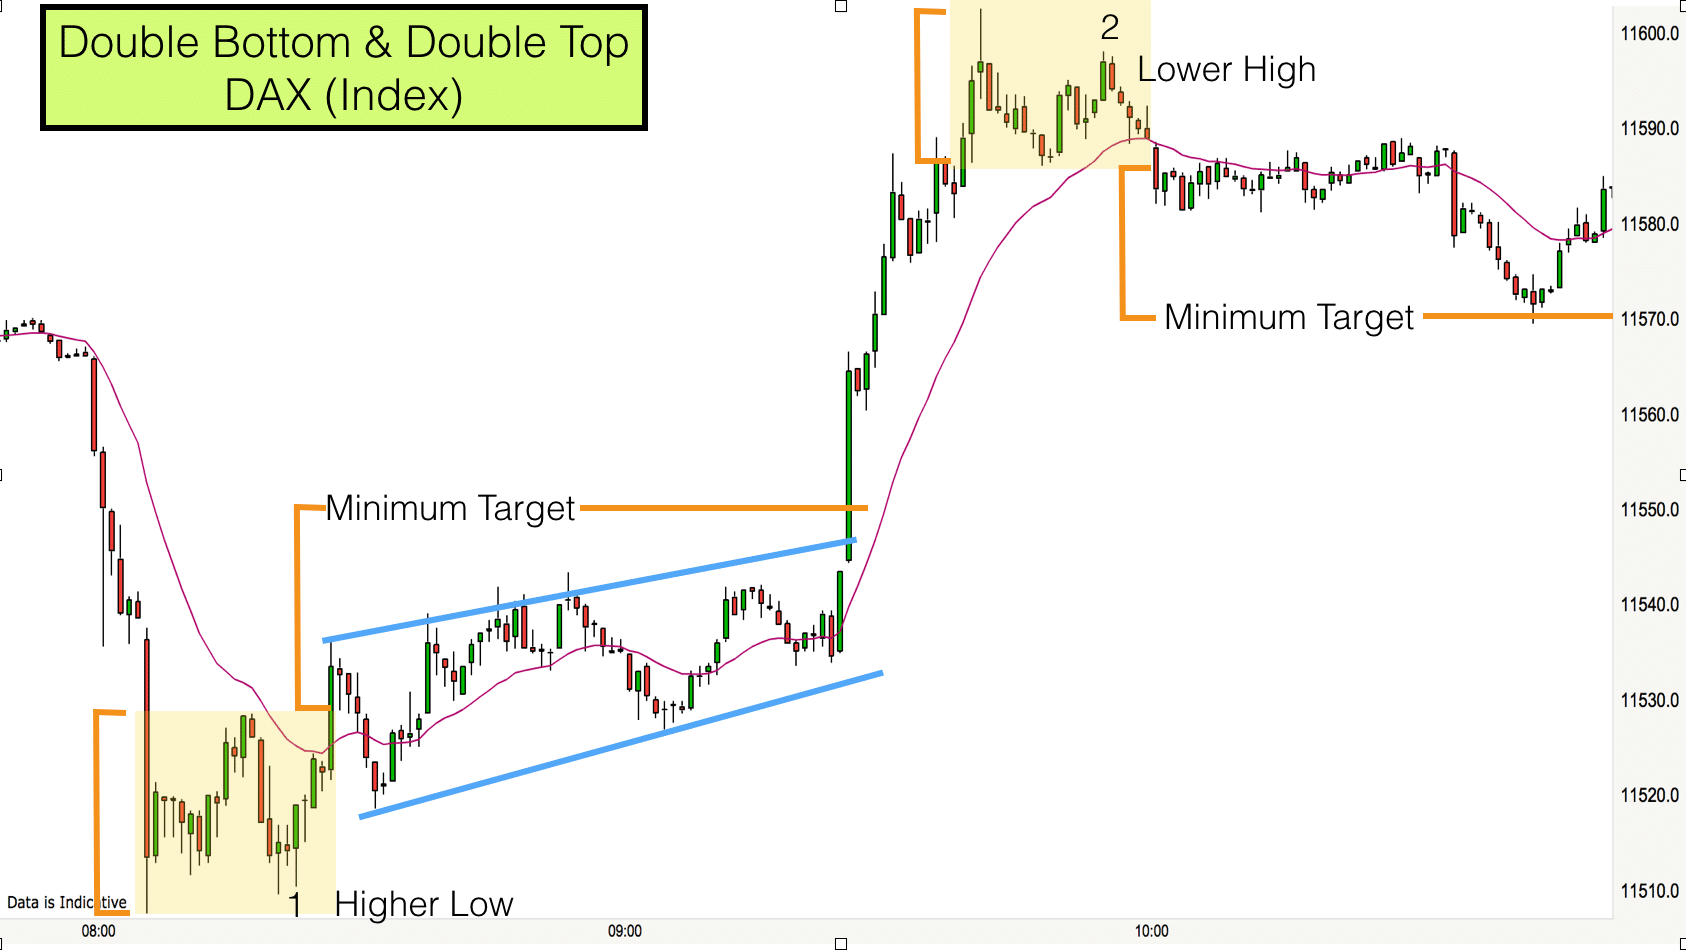 Double bottom & Double Top - DAX 23rd Jan 2017